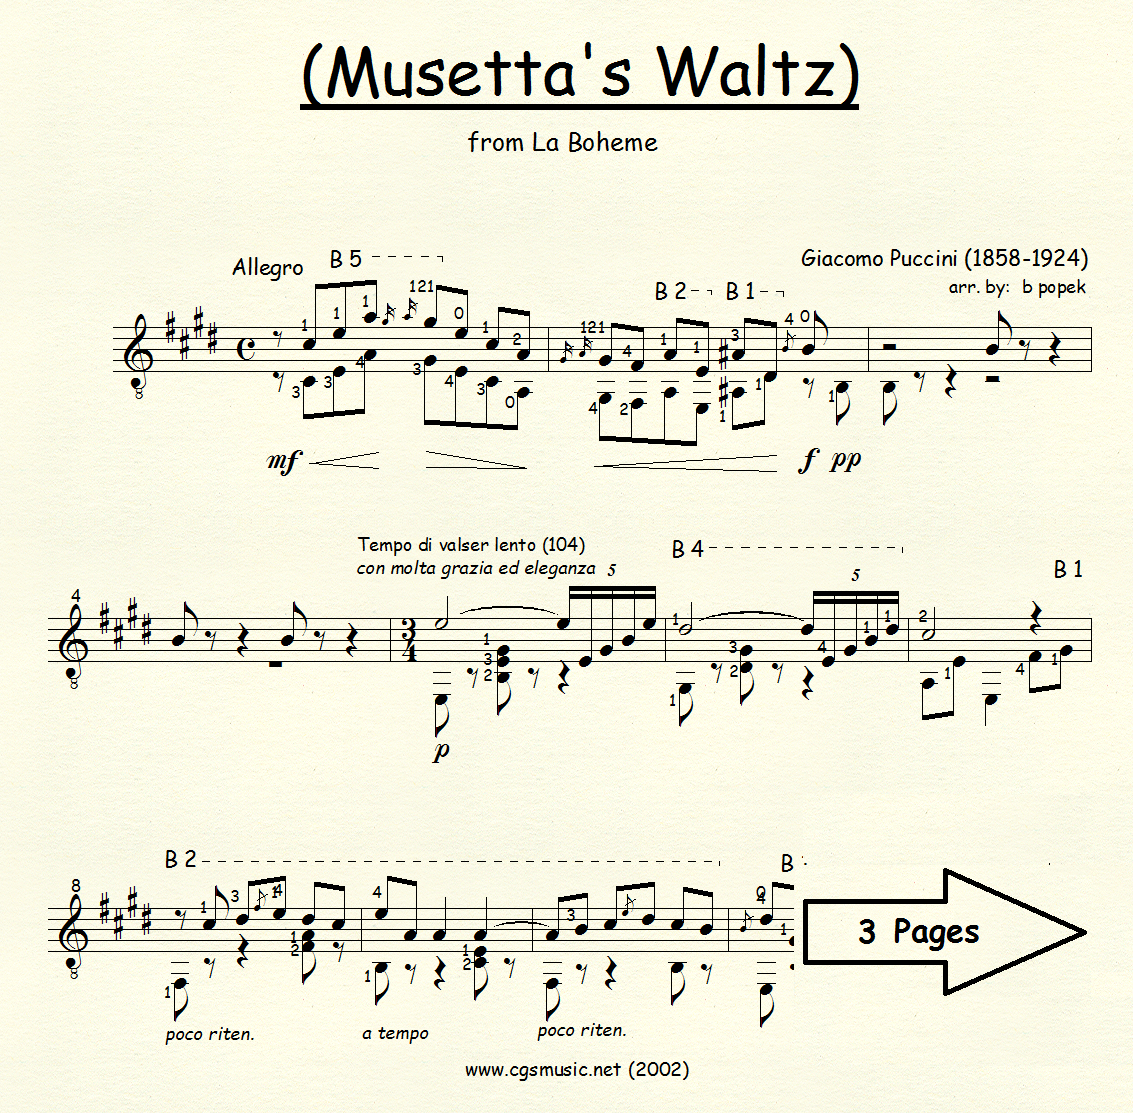 Musetta's Waltz (Puccini) for Classical Guitar in Standard Notation